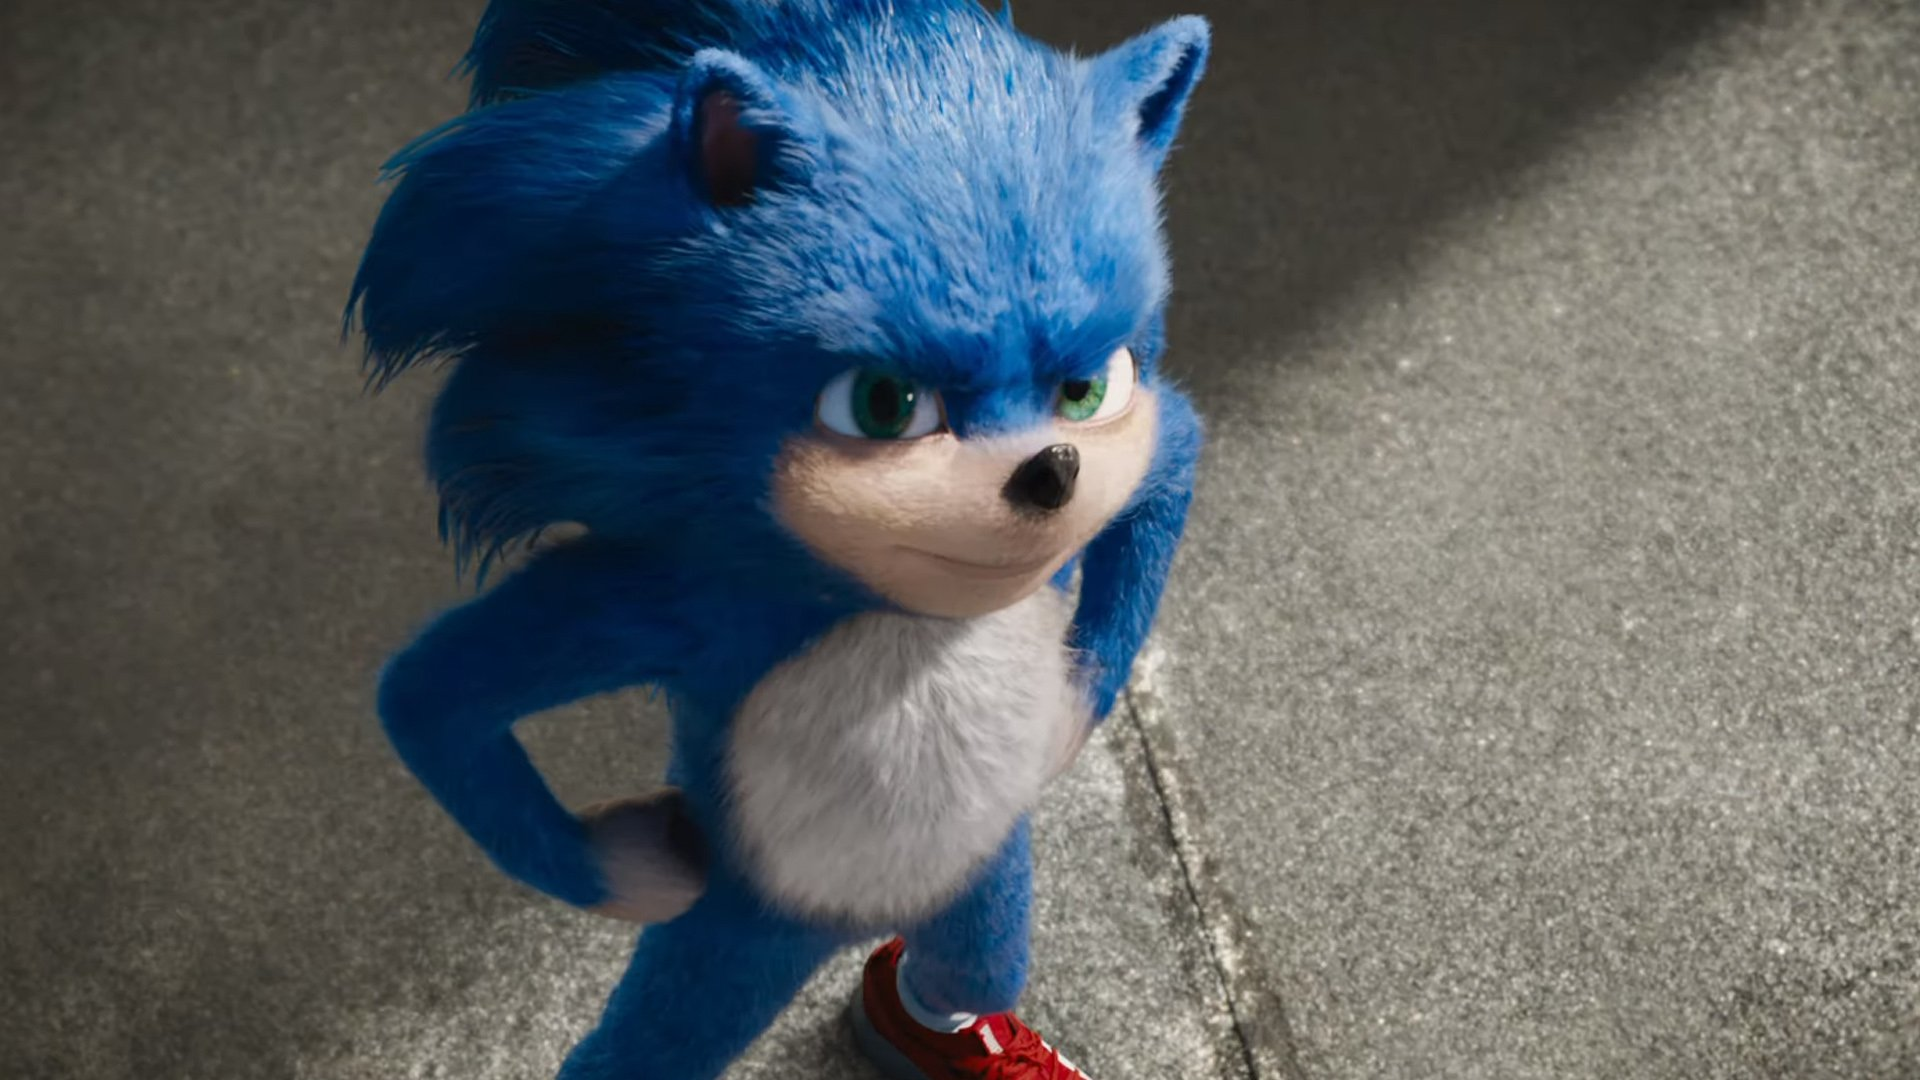 Sonic The Hedgehog Movie Delayed To 2020 In Attempt To Fix It Shacknews